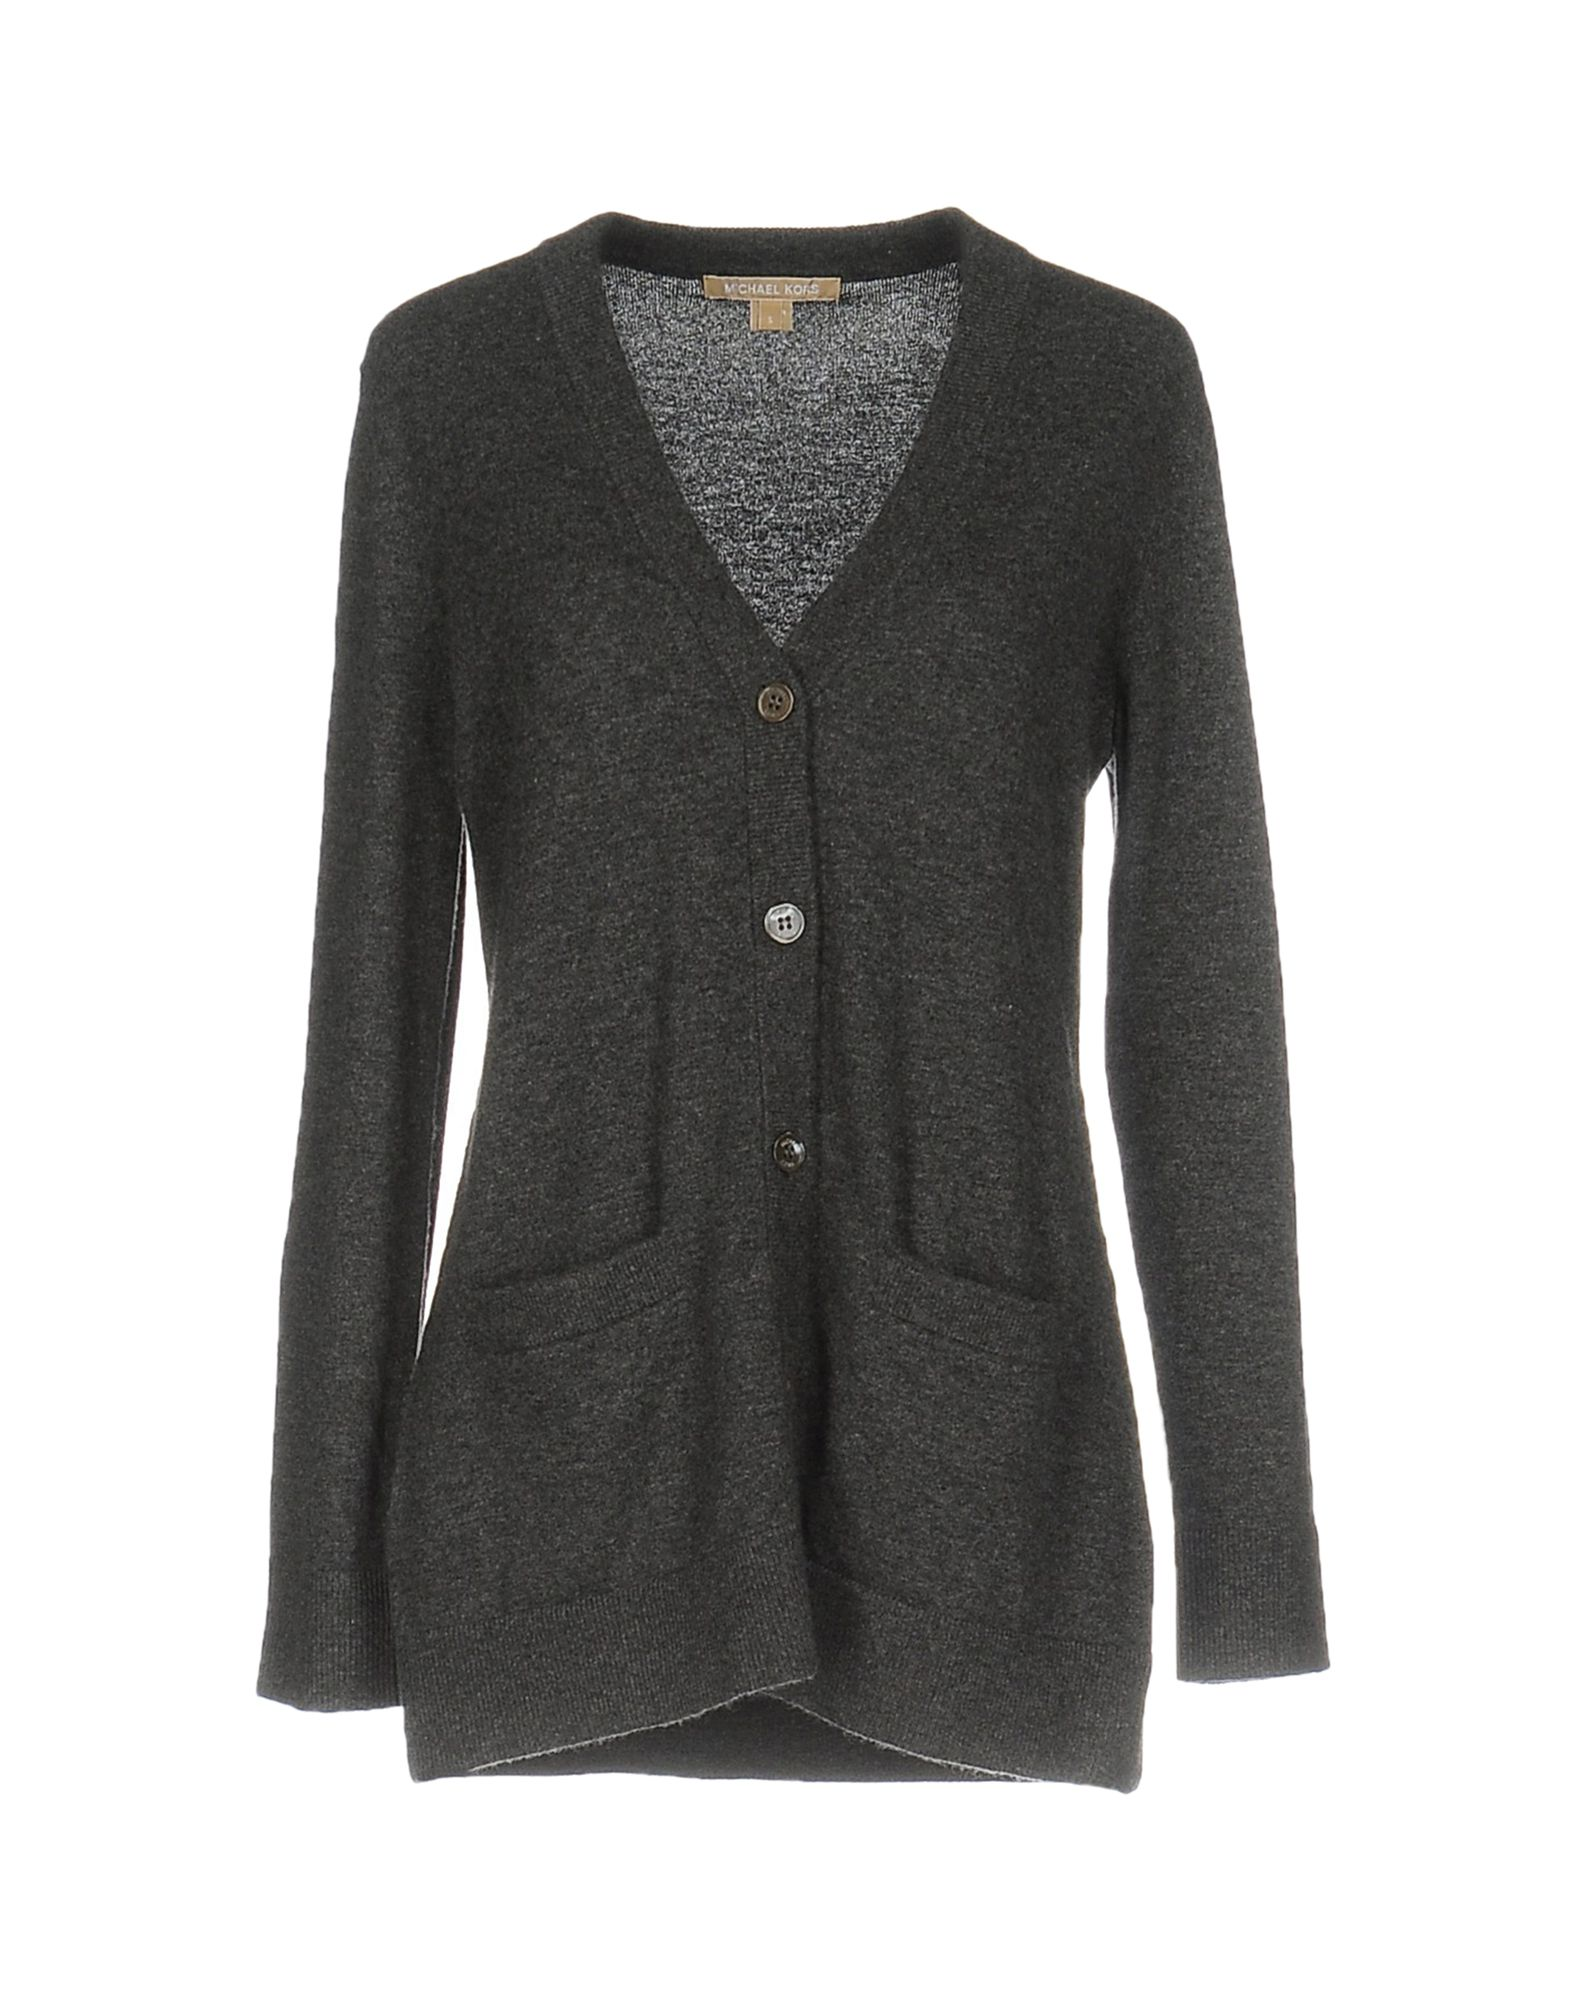 michael kors female michael kors cardigans